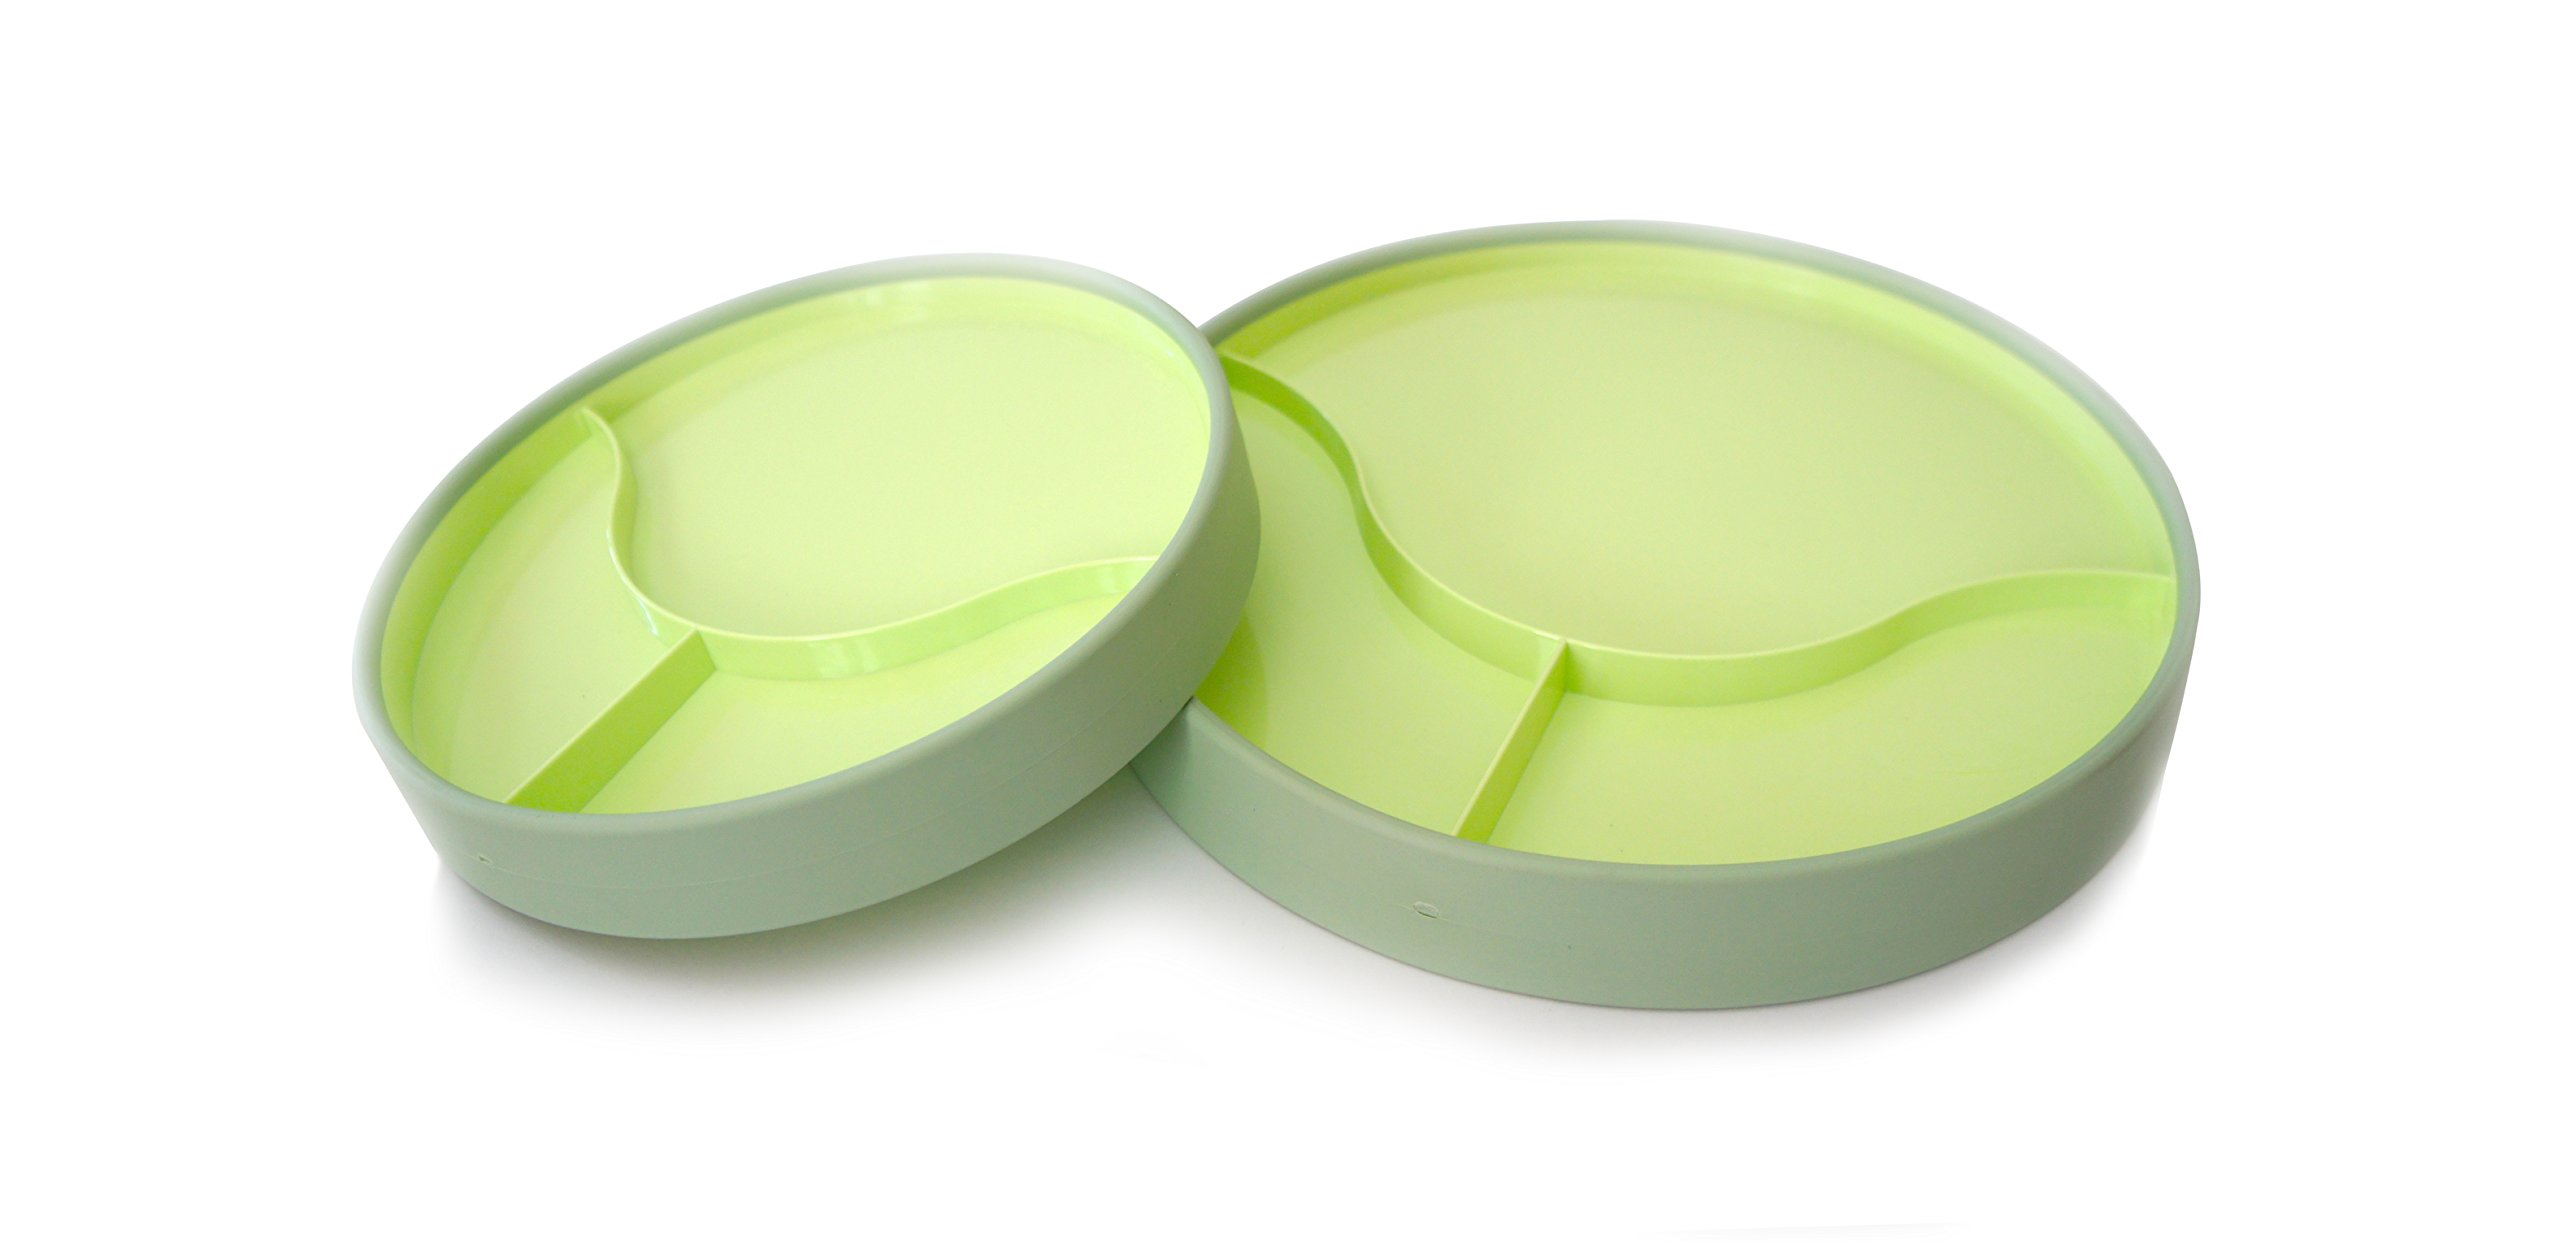 "STAYnEAT Reversible Suction Plate Set, 2 Sided, Sloped, Divided, 7.5"" and 9.5"" Green by STAYWARE"